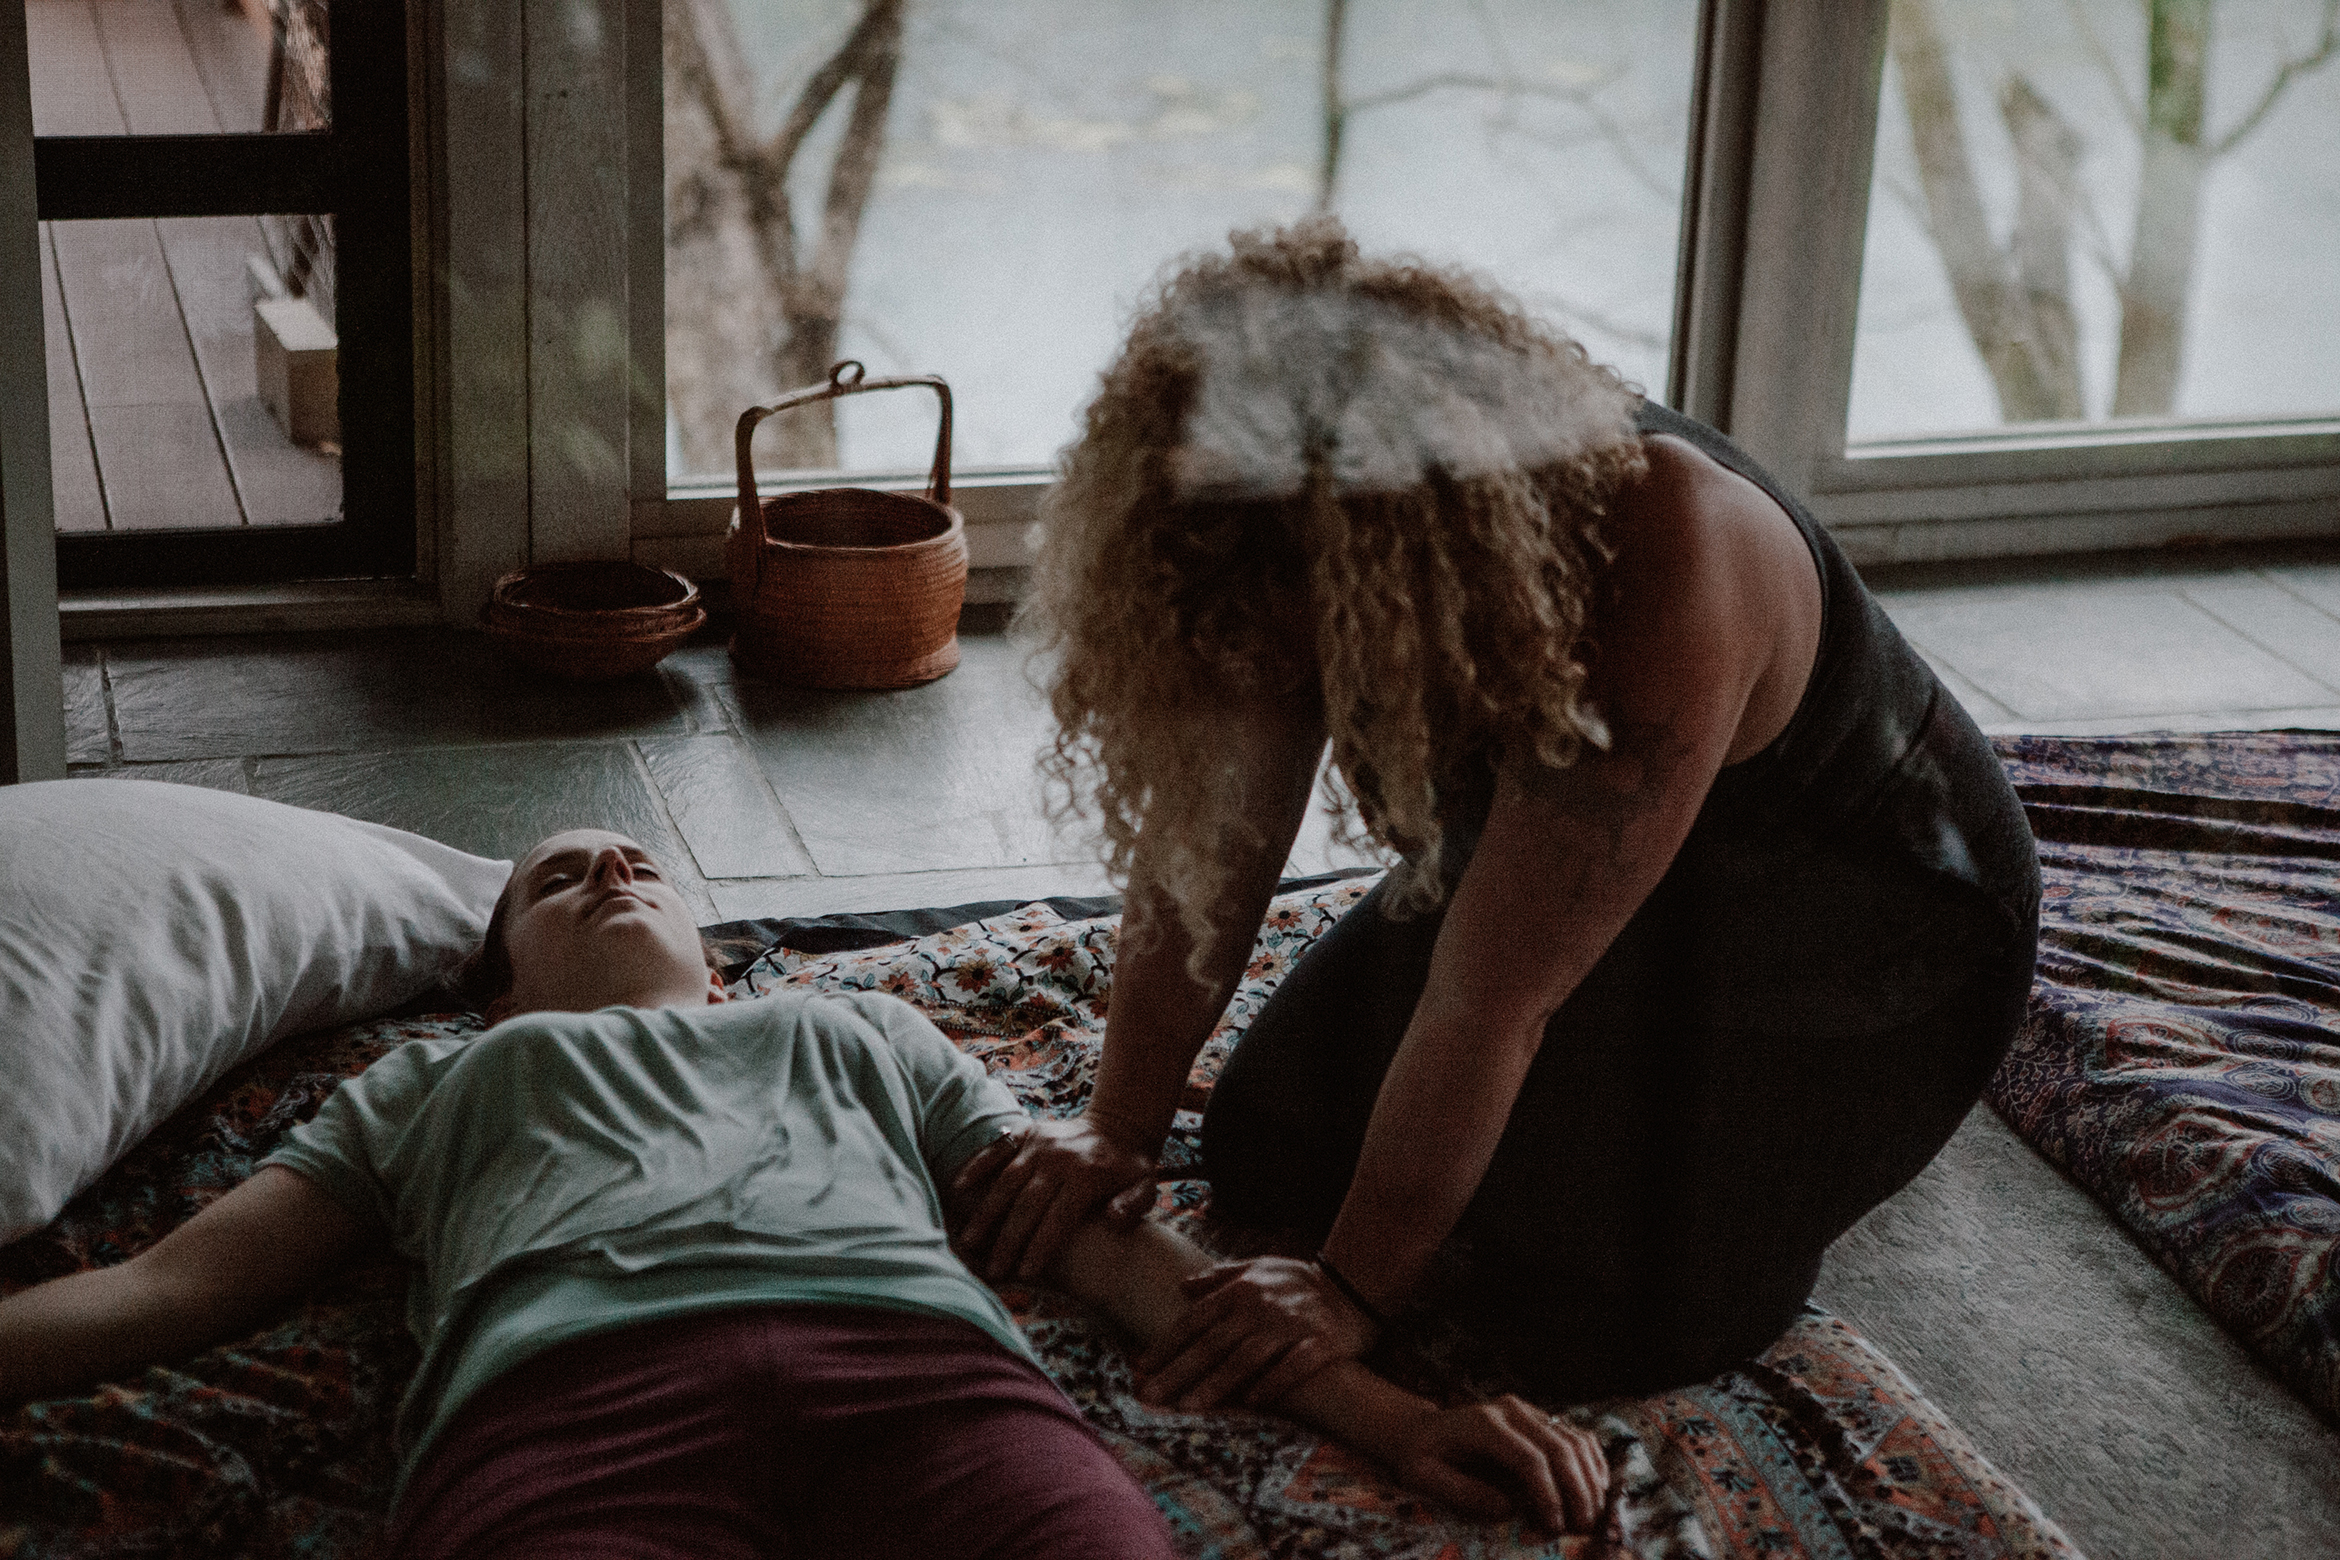 Thai Massage with Ashley Smith // Photo by Jes Scott